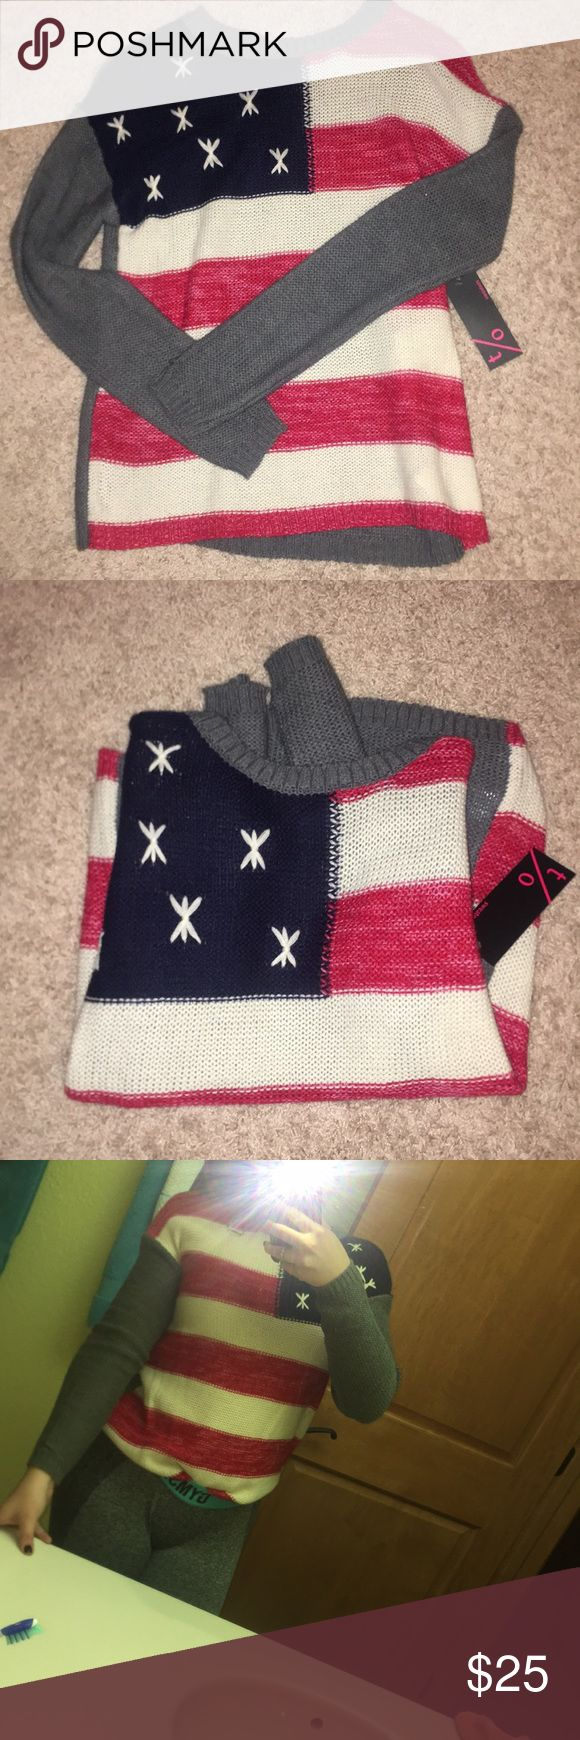 🆕AMERICAN FLAG SWEATER FROM TAKEOUT NEW WITH TAGS AMERICAN FLAG SWEATER🤙🇺🇸 Show your American pride in fall, winter, and spring with this stylish American flag print sweater.   Size XS, never worn:)  BUNDLE AND SAVE 5% Takeout Sweaters Crew & Scoop Necks